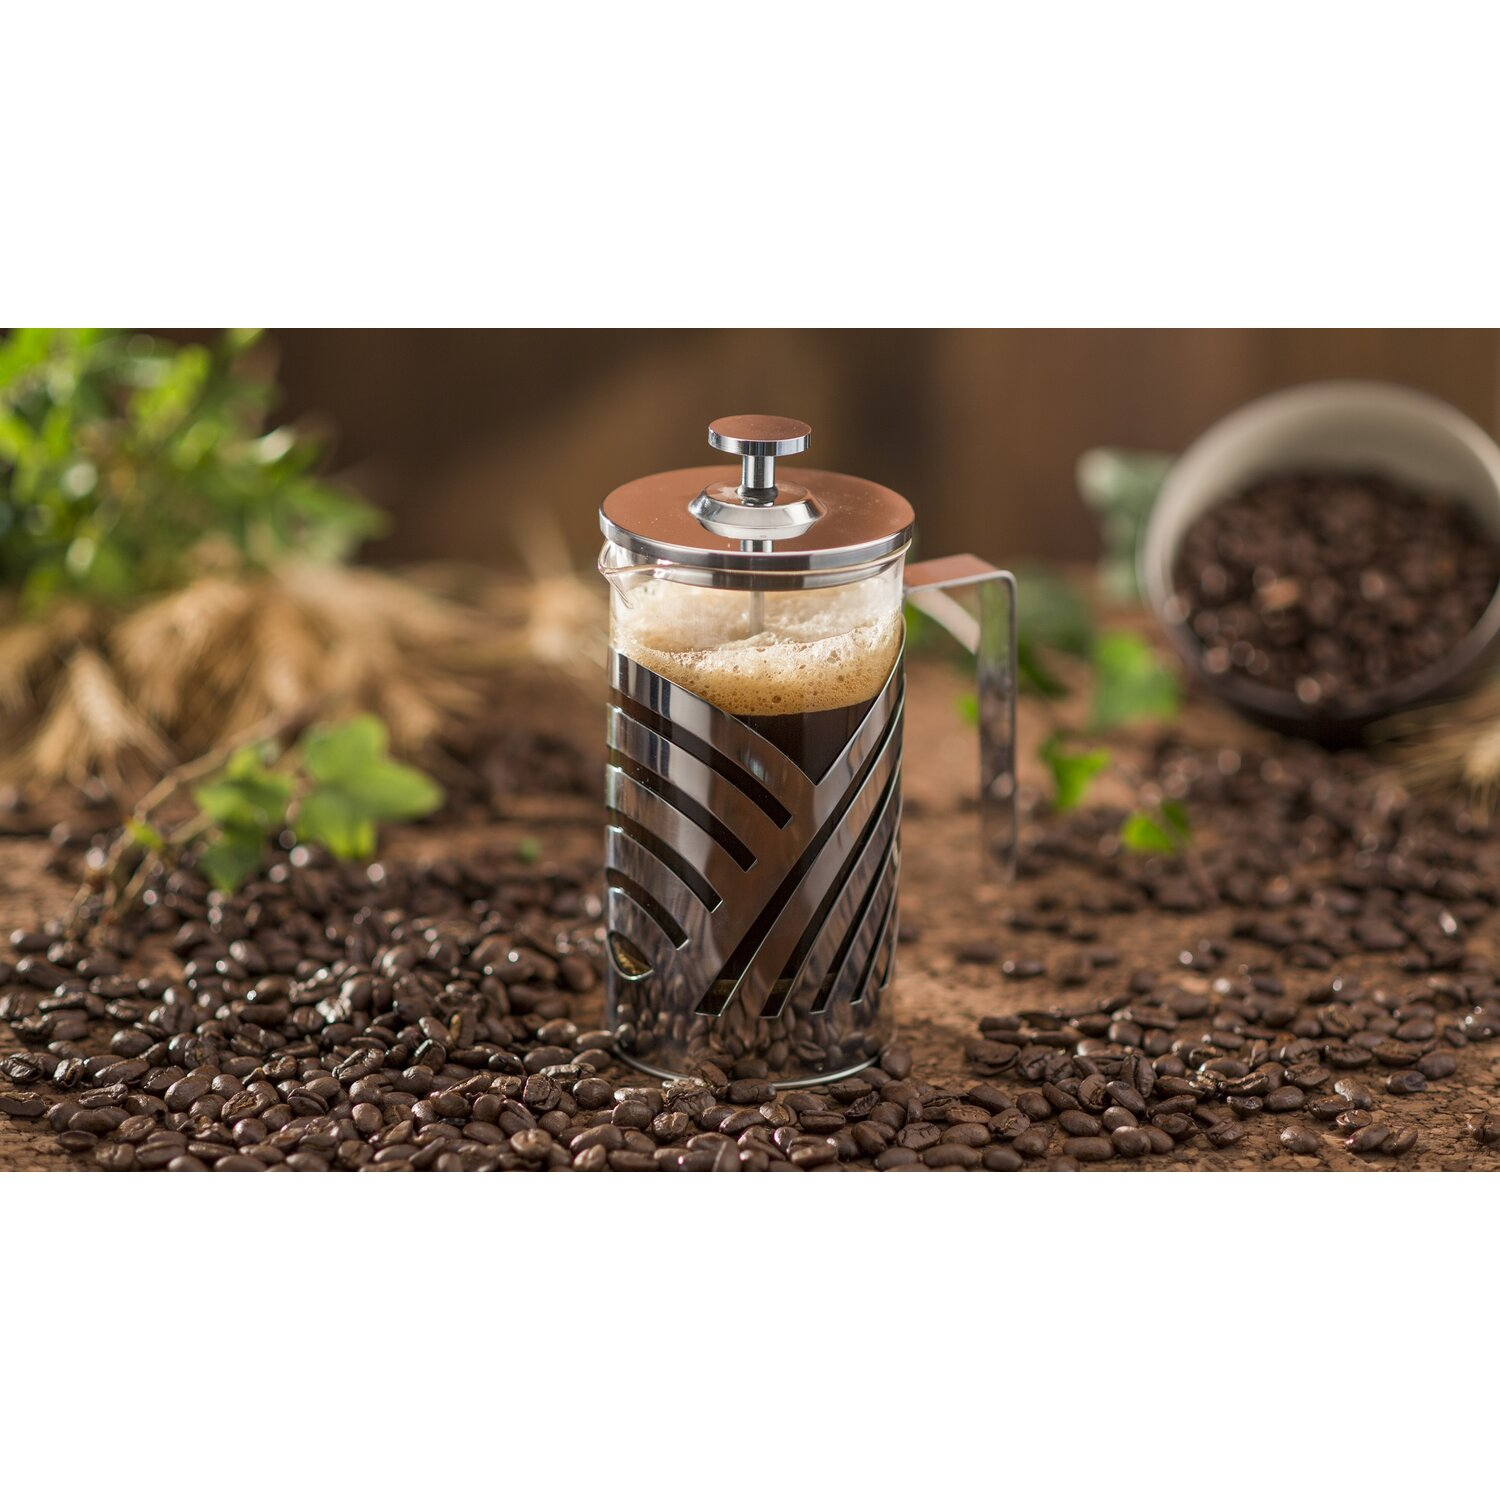 Grosche Madrid French Press Coffee And Tea Maker Ovente Oz Stainless Steel French Press Coffee Maker